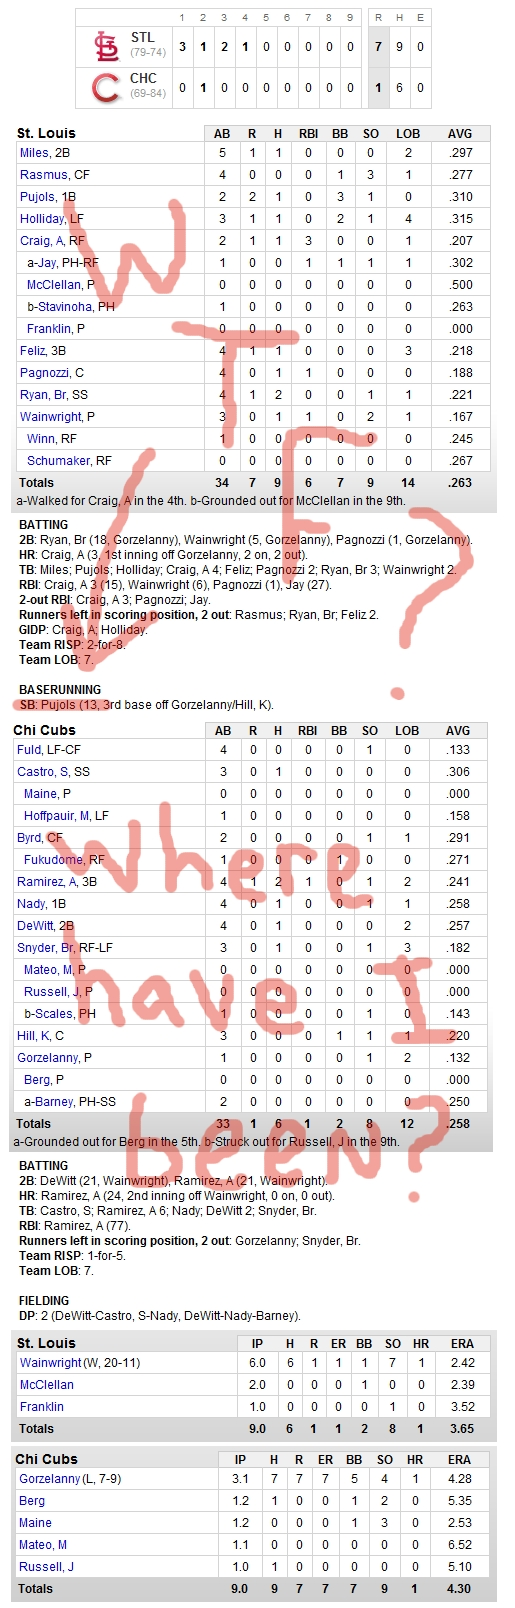 Enhanced Box Score: Cardinals 7, Cubs 1 – September 24, 2010